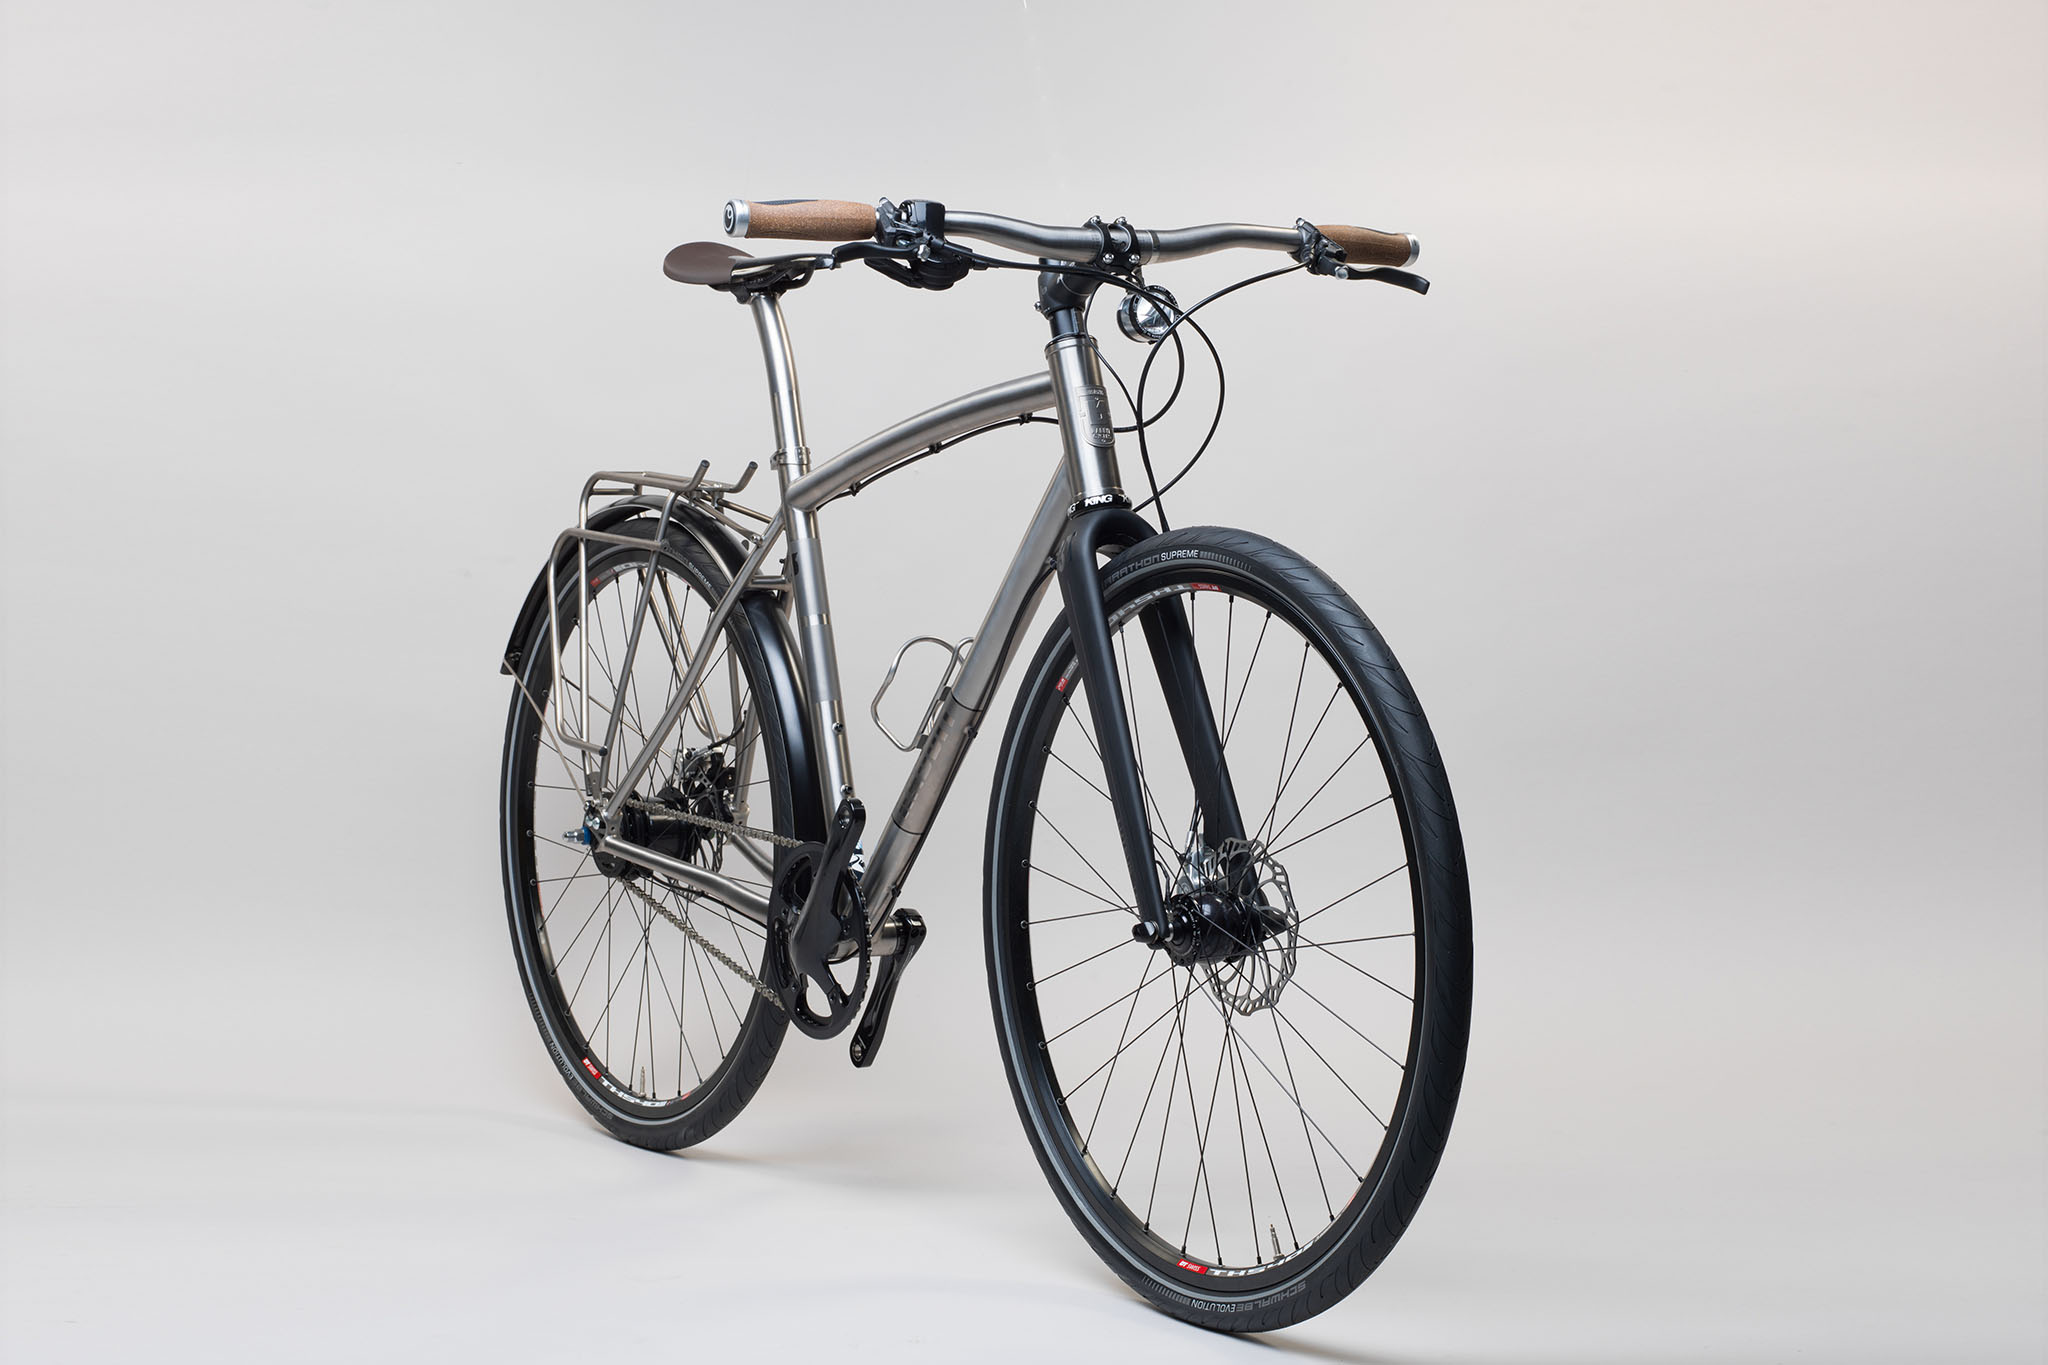 titan_commuter_40_from_rabbit_titan_cycles_bavaria